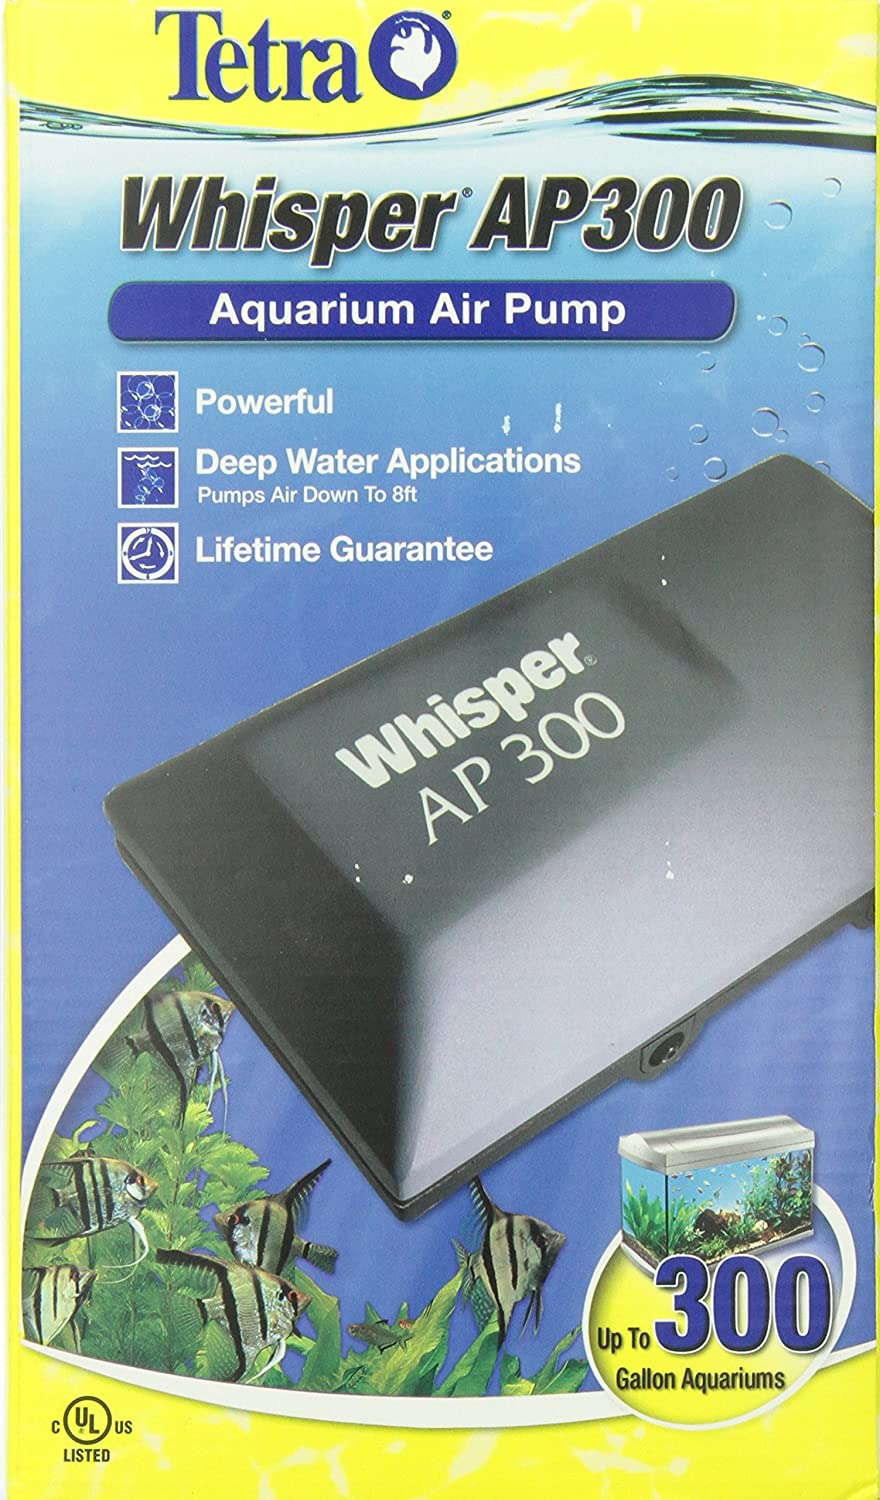 91Zm5Fak 4L._SL1500_ amazon com tetra 26075 whisper aquarium air pump ap300, up to  at cita.asia